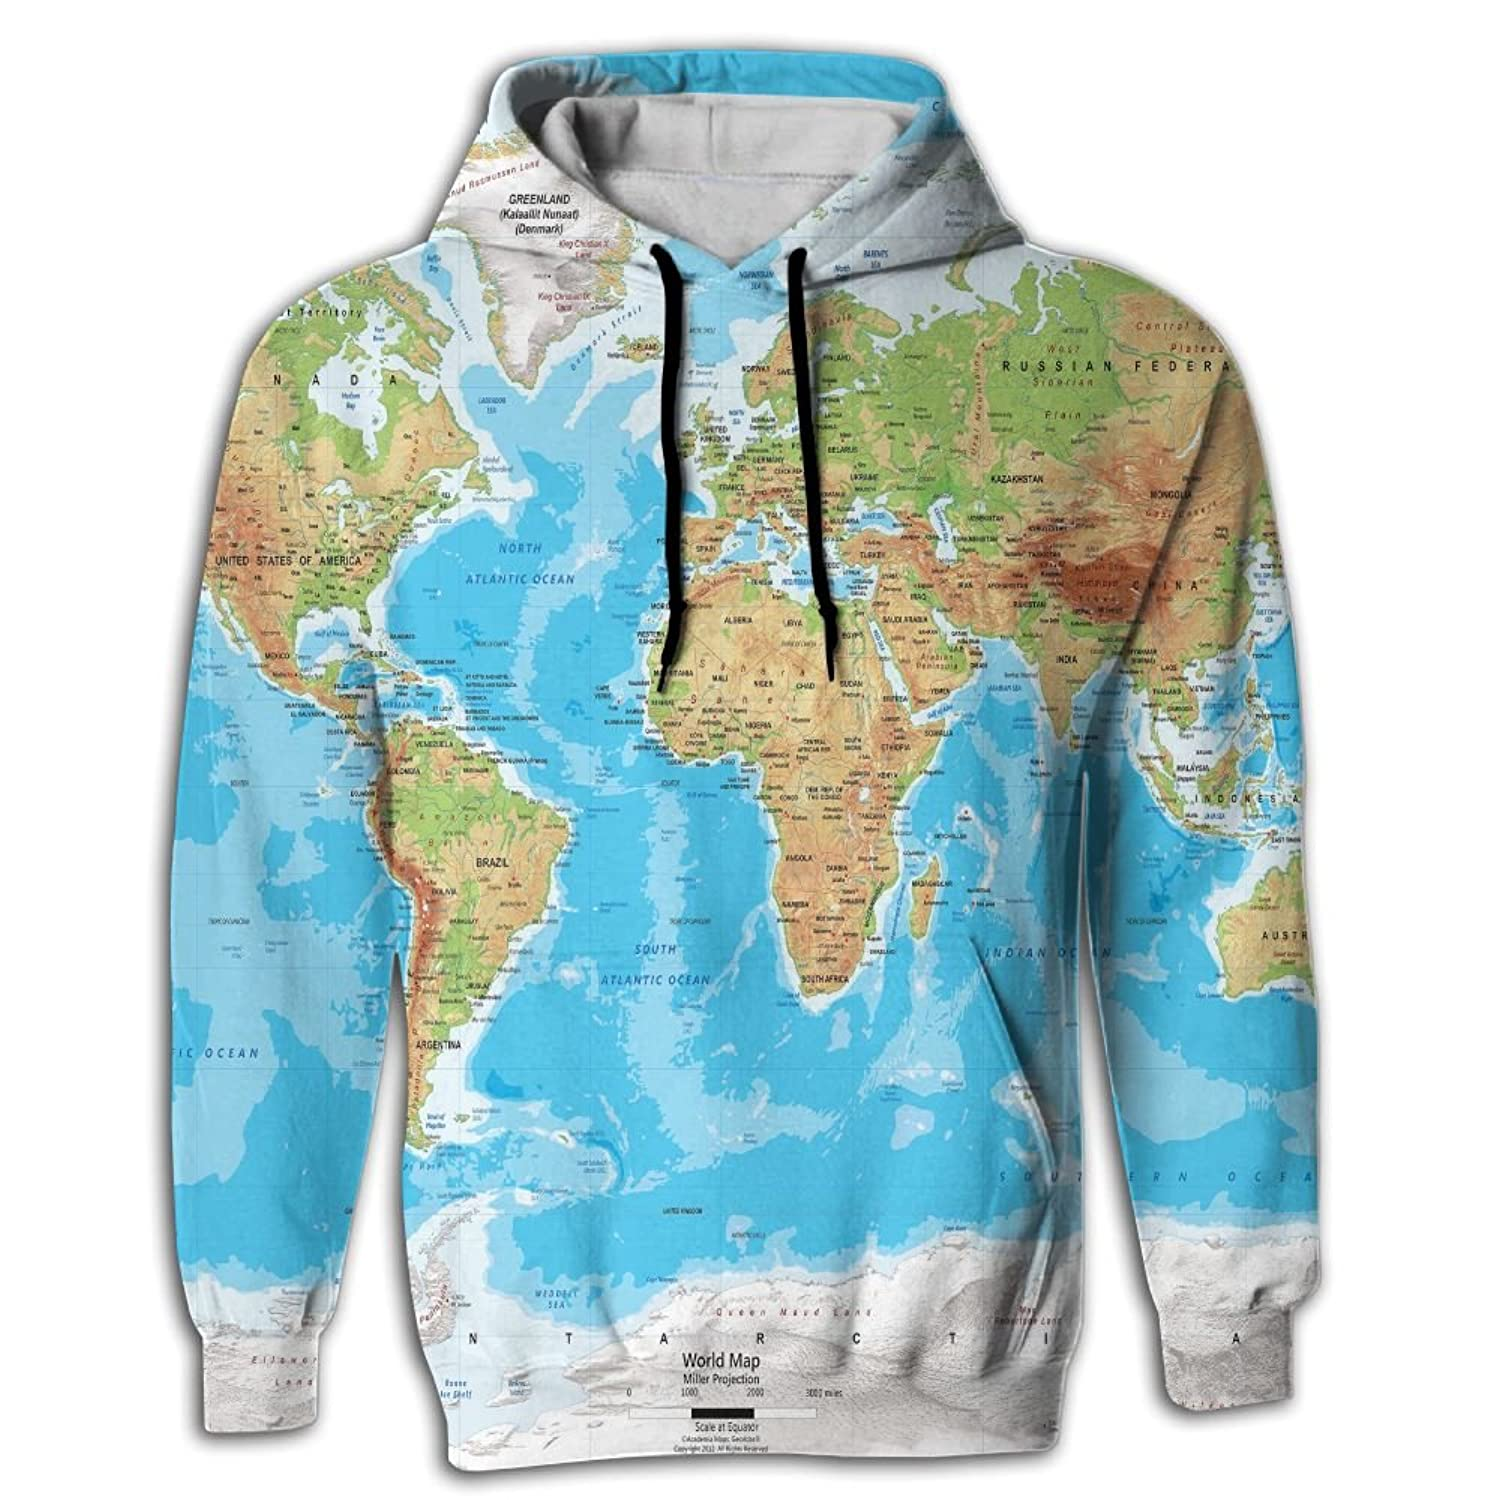 Great world map mens all over print long sleeve hoodie pullover great world map mens all over print long sleeve hoodie pullover blouse sweatshirt fricstar at amazon mens clothing store gumiabroncs Image collections